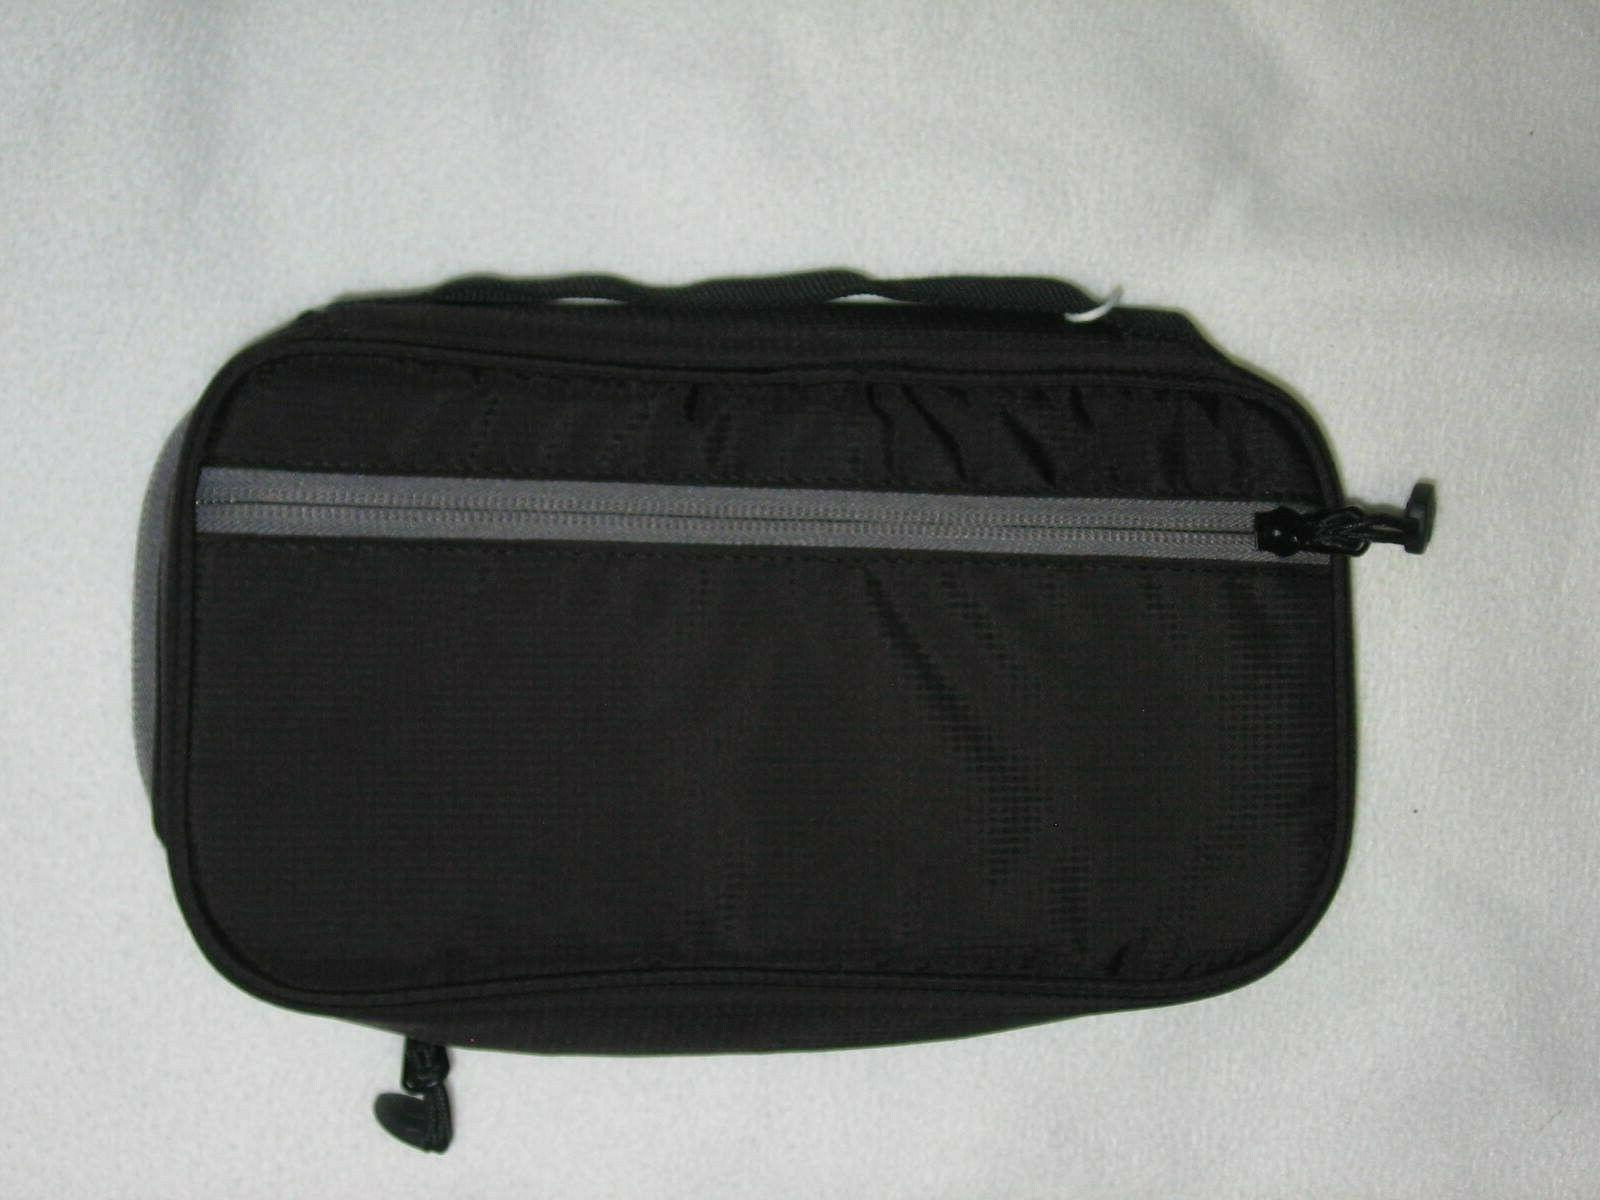 Bagsmart Electronic Organizer Cable Case 2 Tier Small Gray NWT